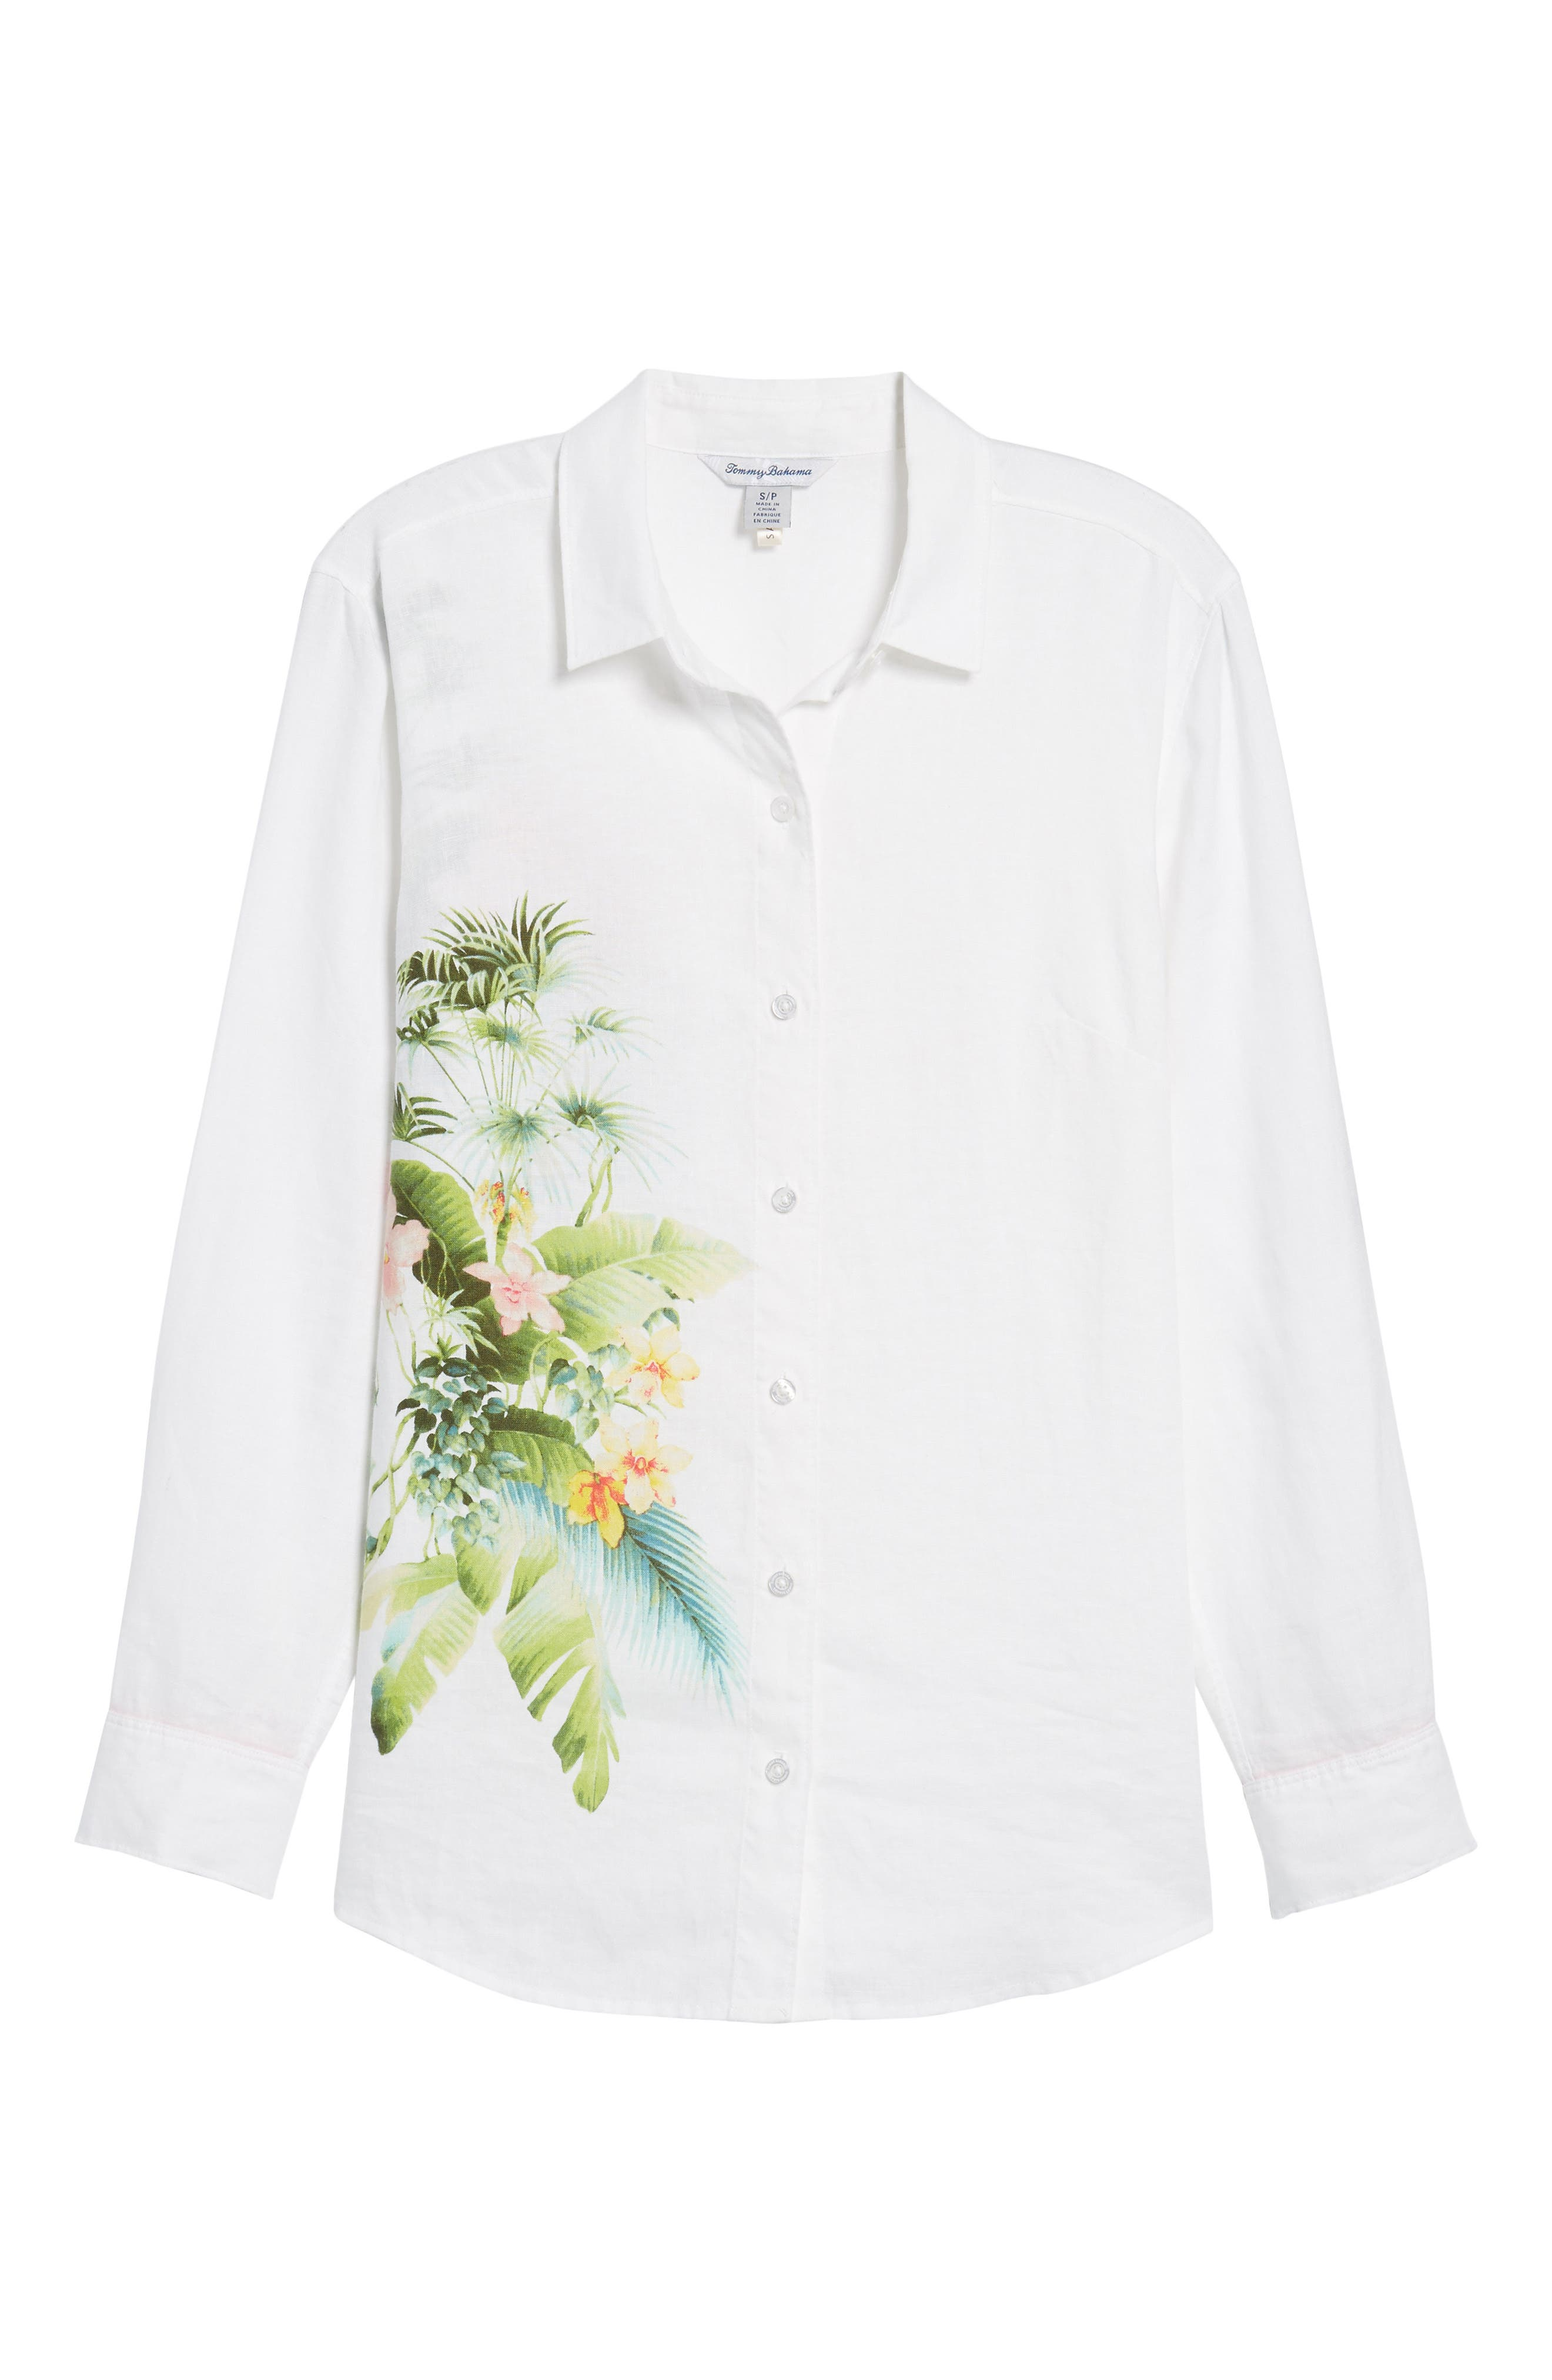 Queen Palms Linen Shirt,                             Alternate thumbnail 6, color,                             WHITE